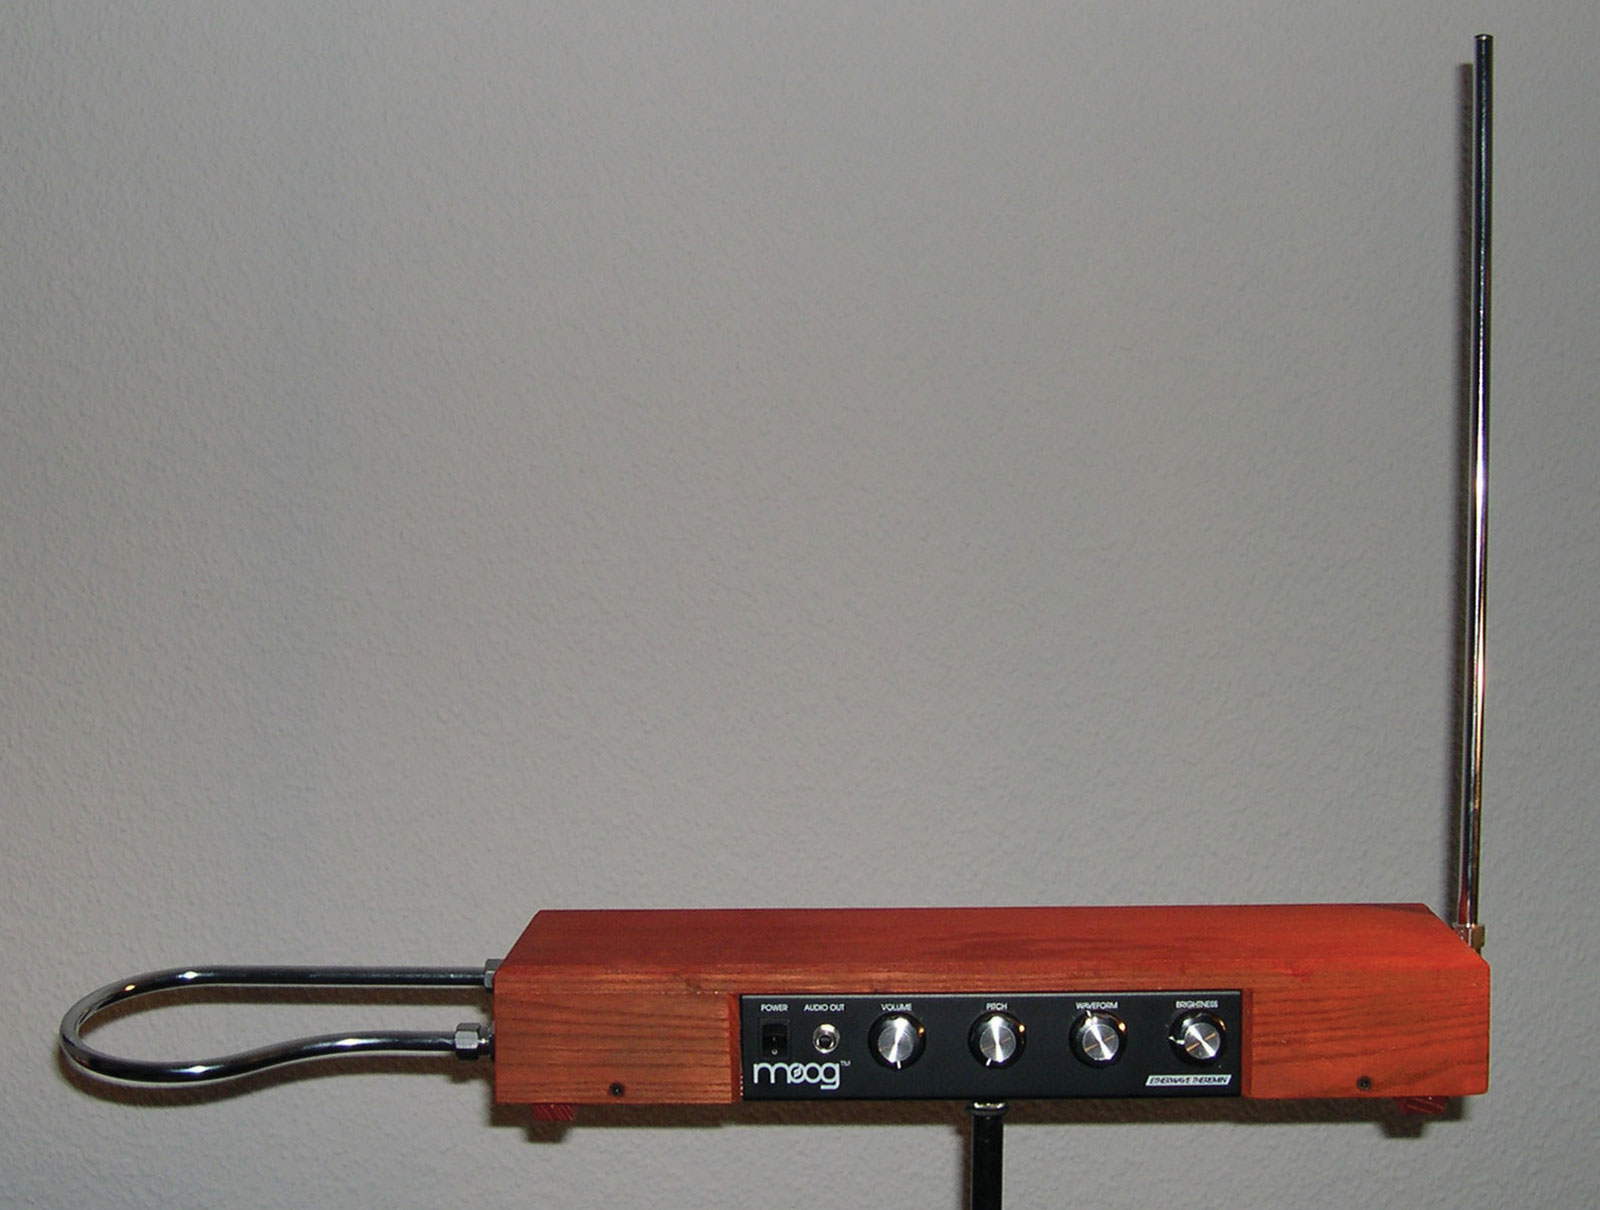 The theremin: The strangest instrument ever invented?